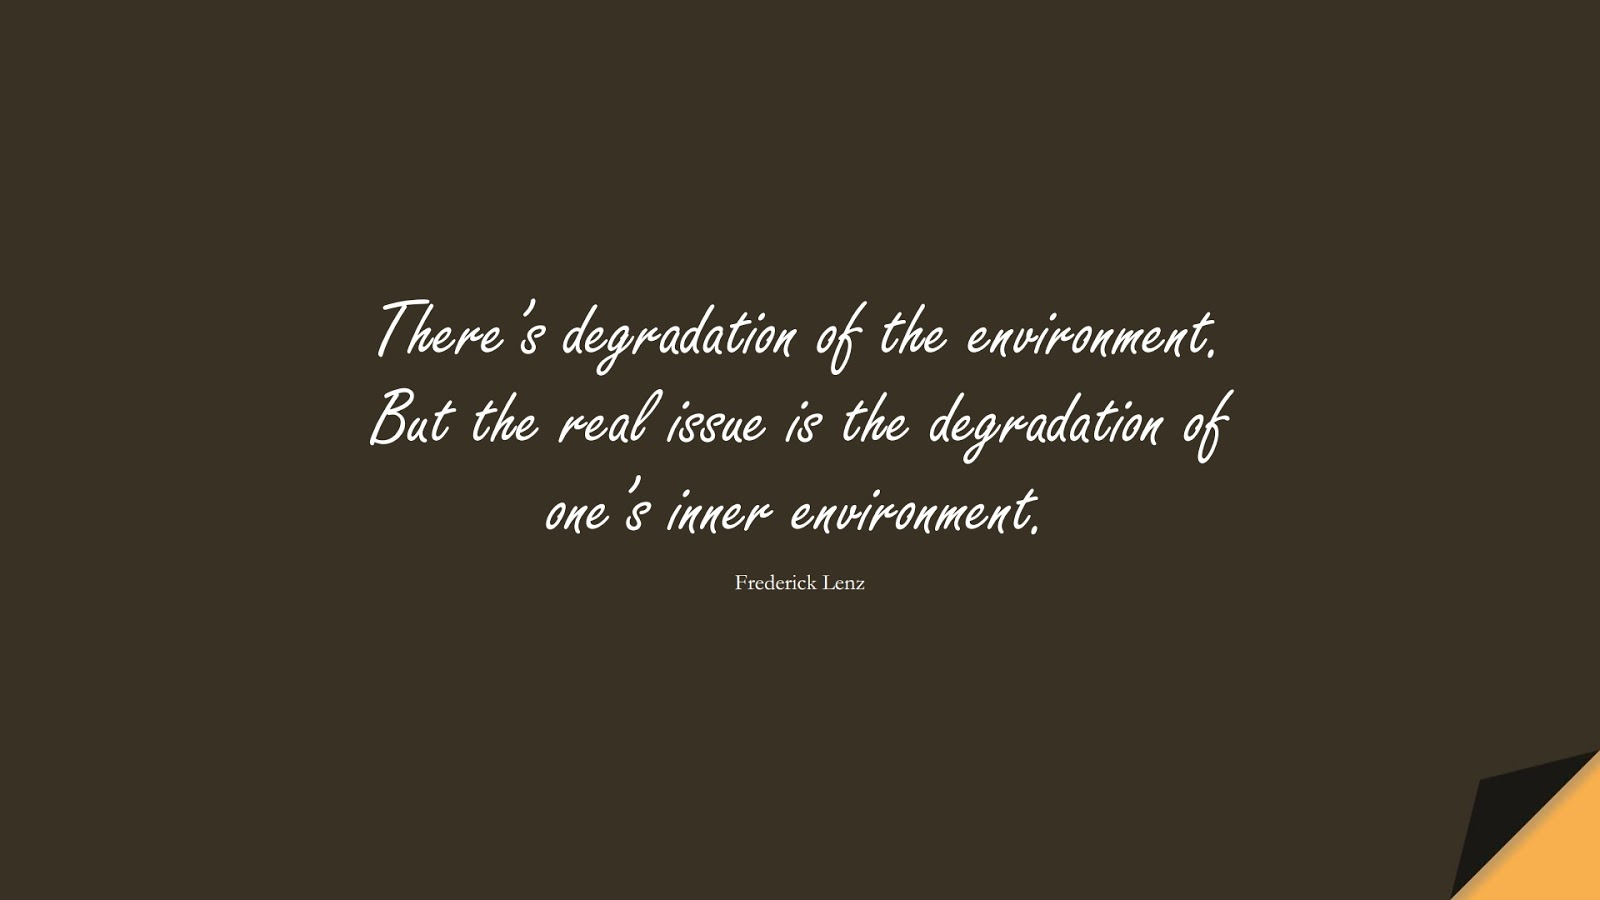 There's degradation of the environment. But the real issue is the degradation of one's inner environment. (Frederick Lenz);  #HumanityQuotes